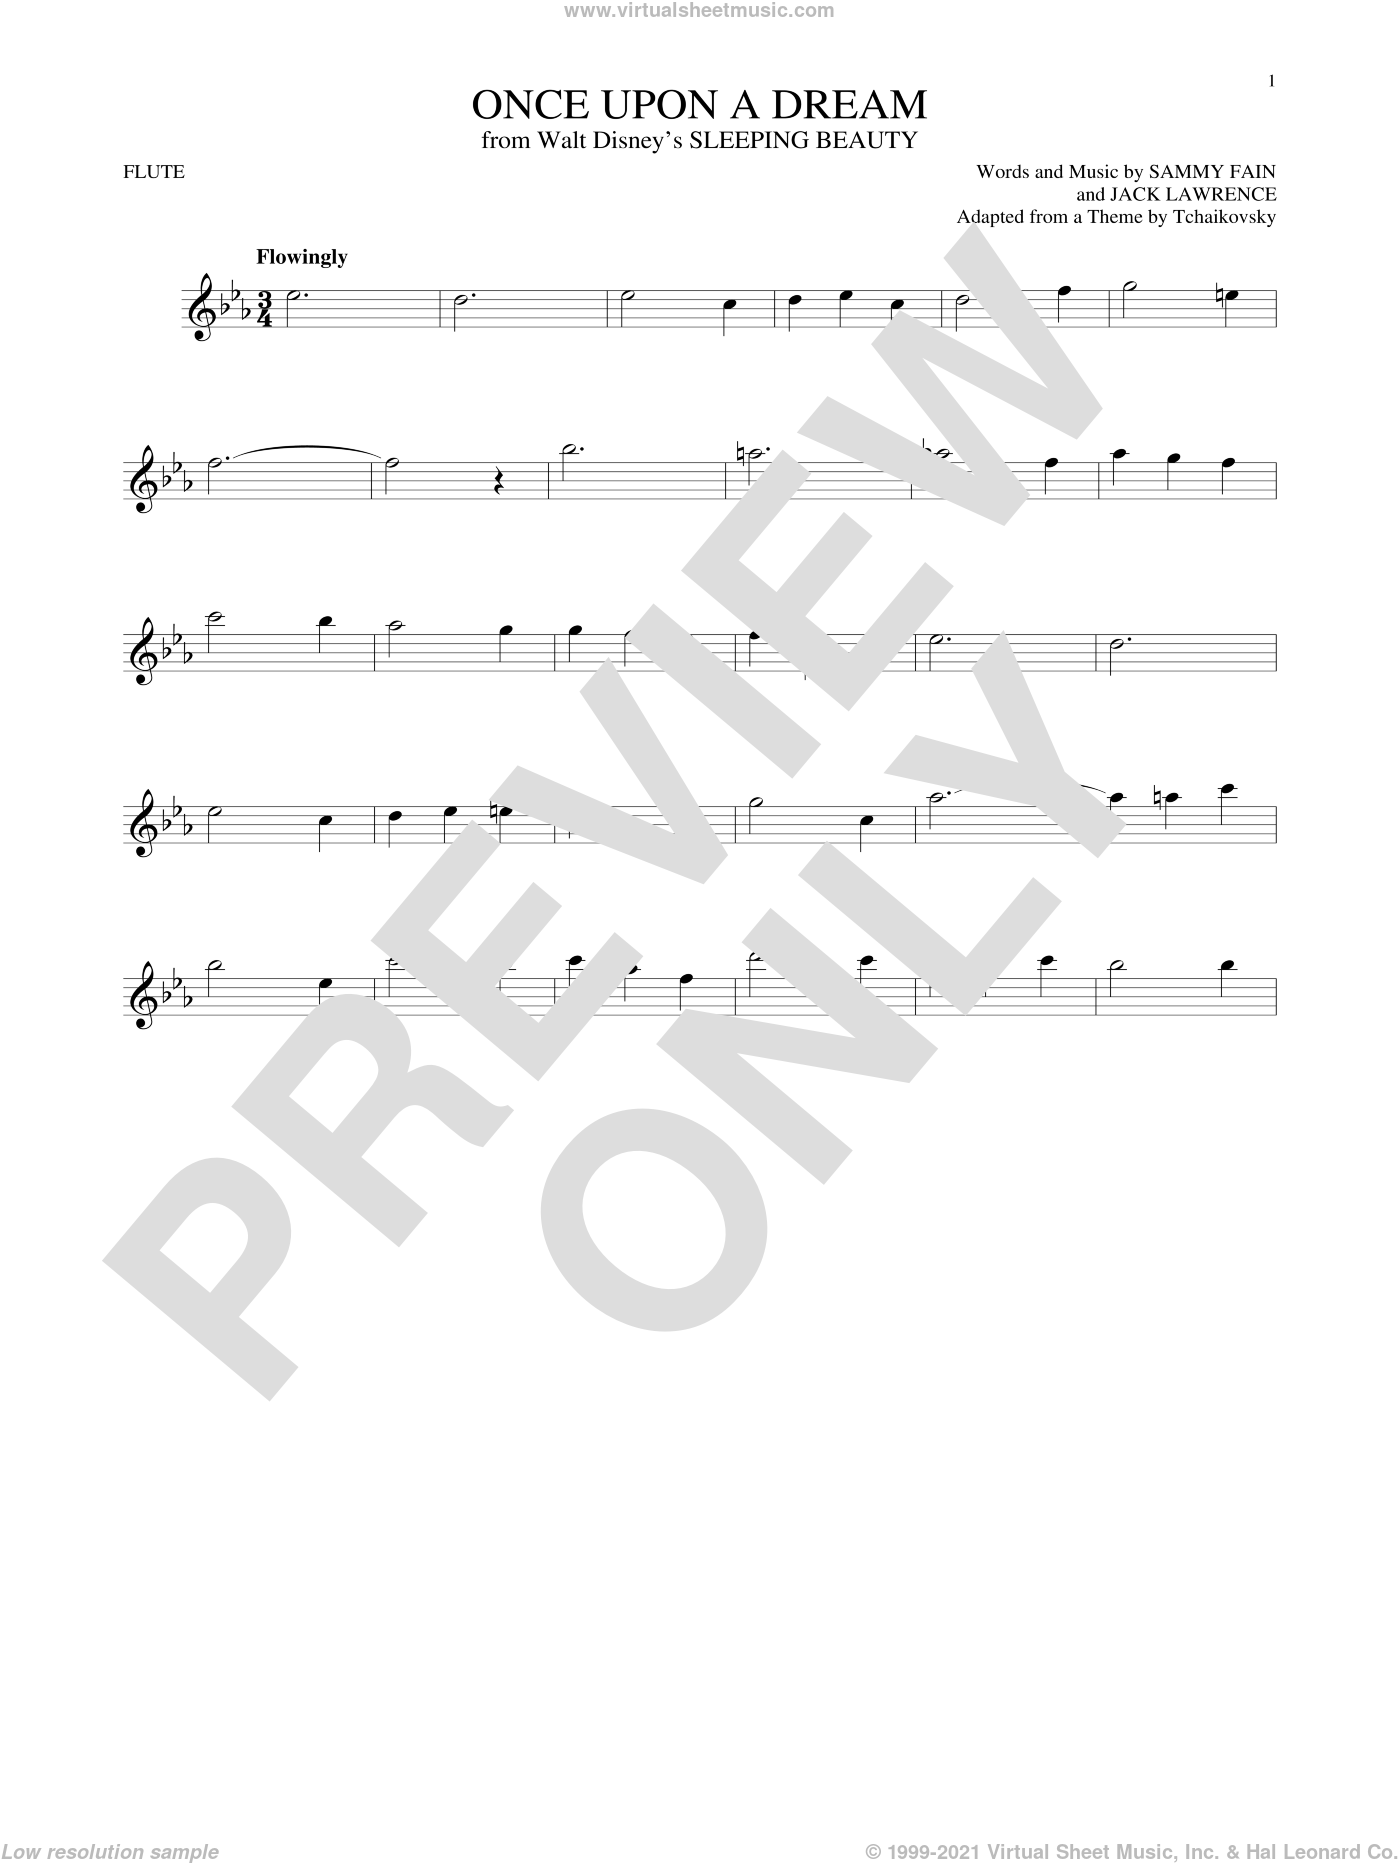 Once Upon A Dream sheet music for flute solo by Sammy Fain and Jack Lawrence. Score Image Preview.